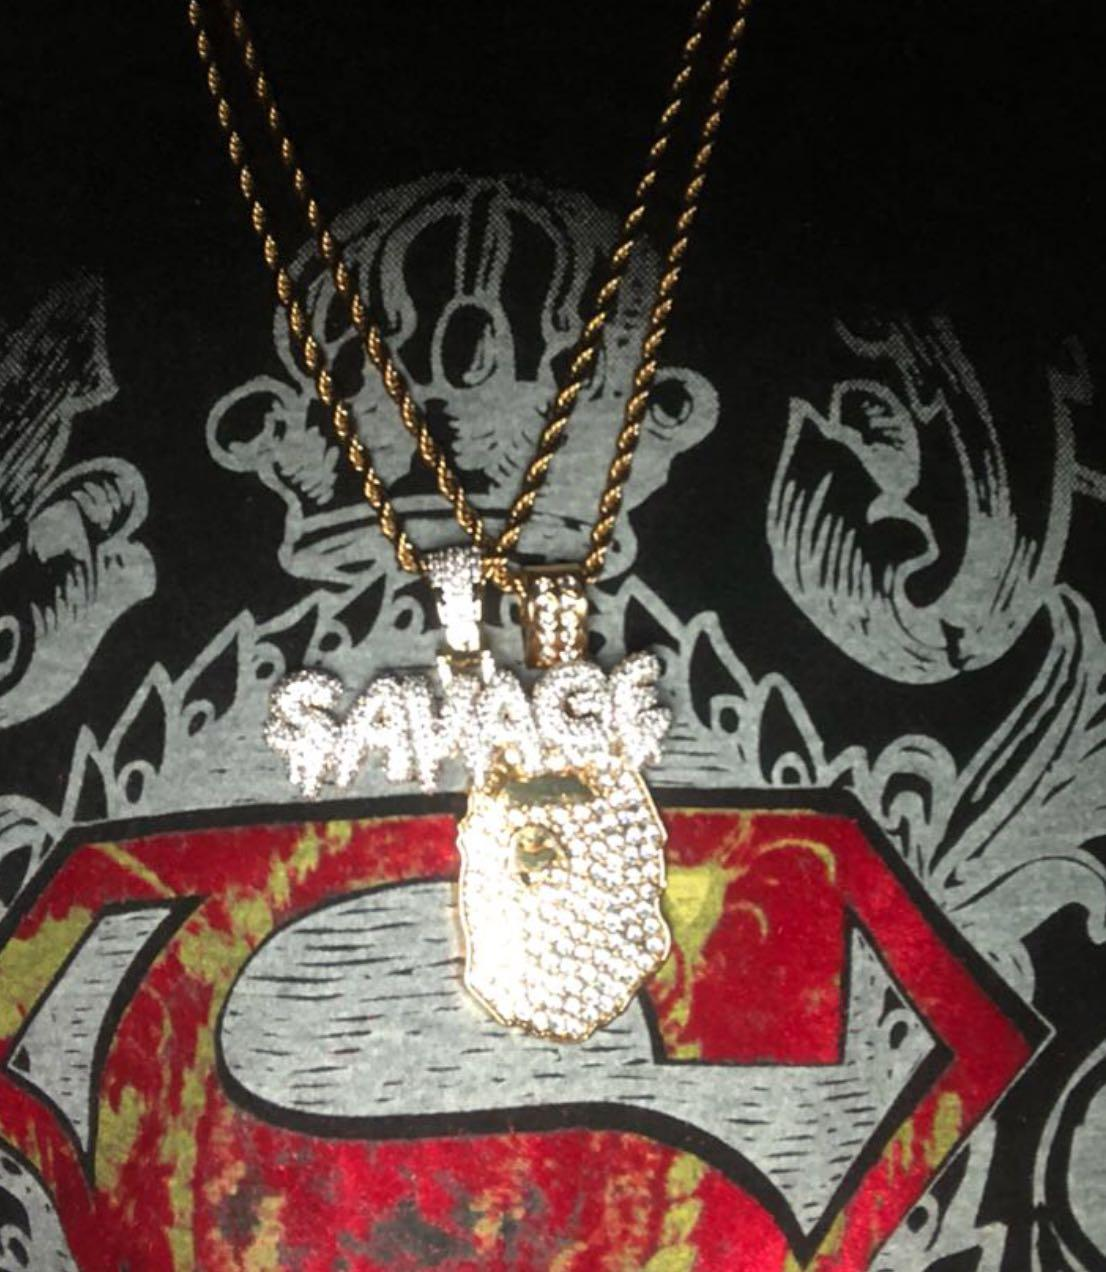 ❗️ PROMOTION ICY SAVAGE PENDANT + FREE 24 INCH ROPE CHAIN